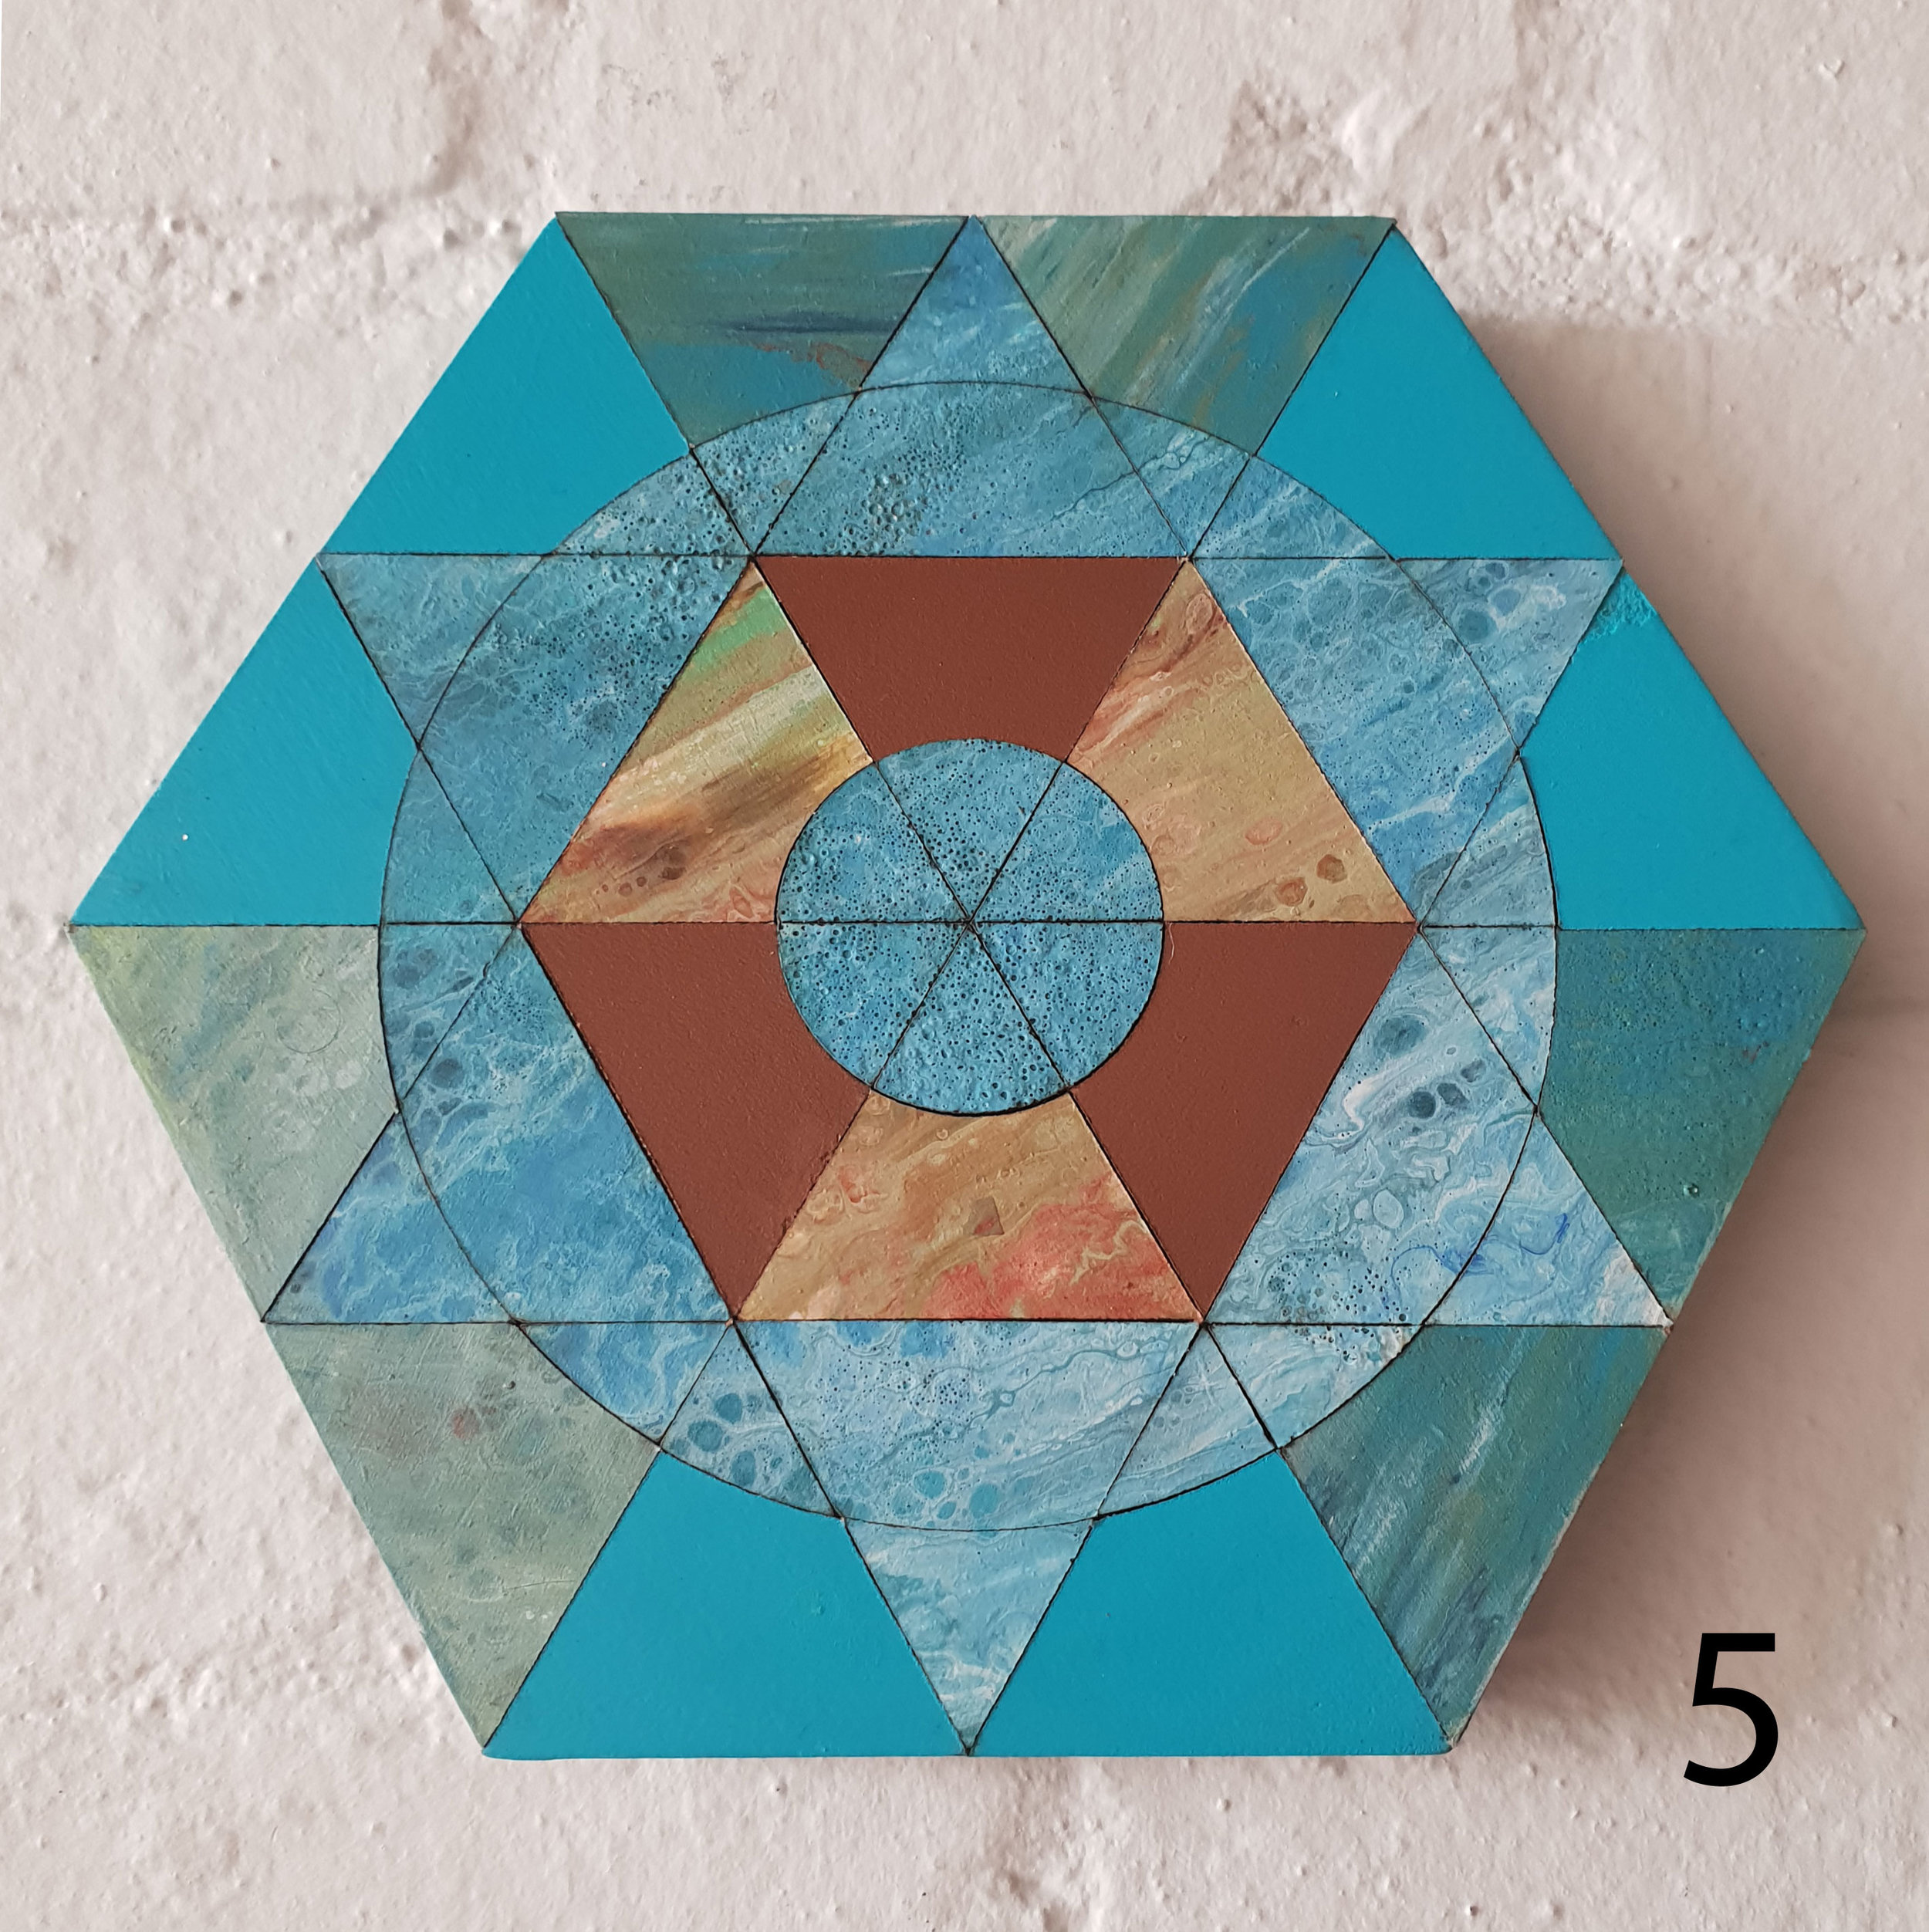 hexagon-five.jpg